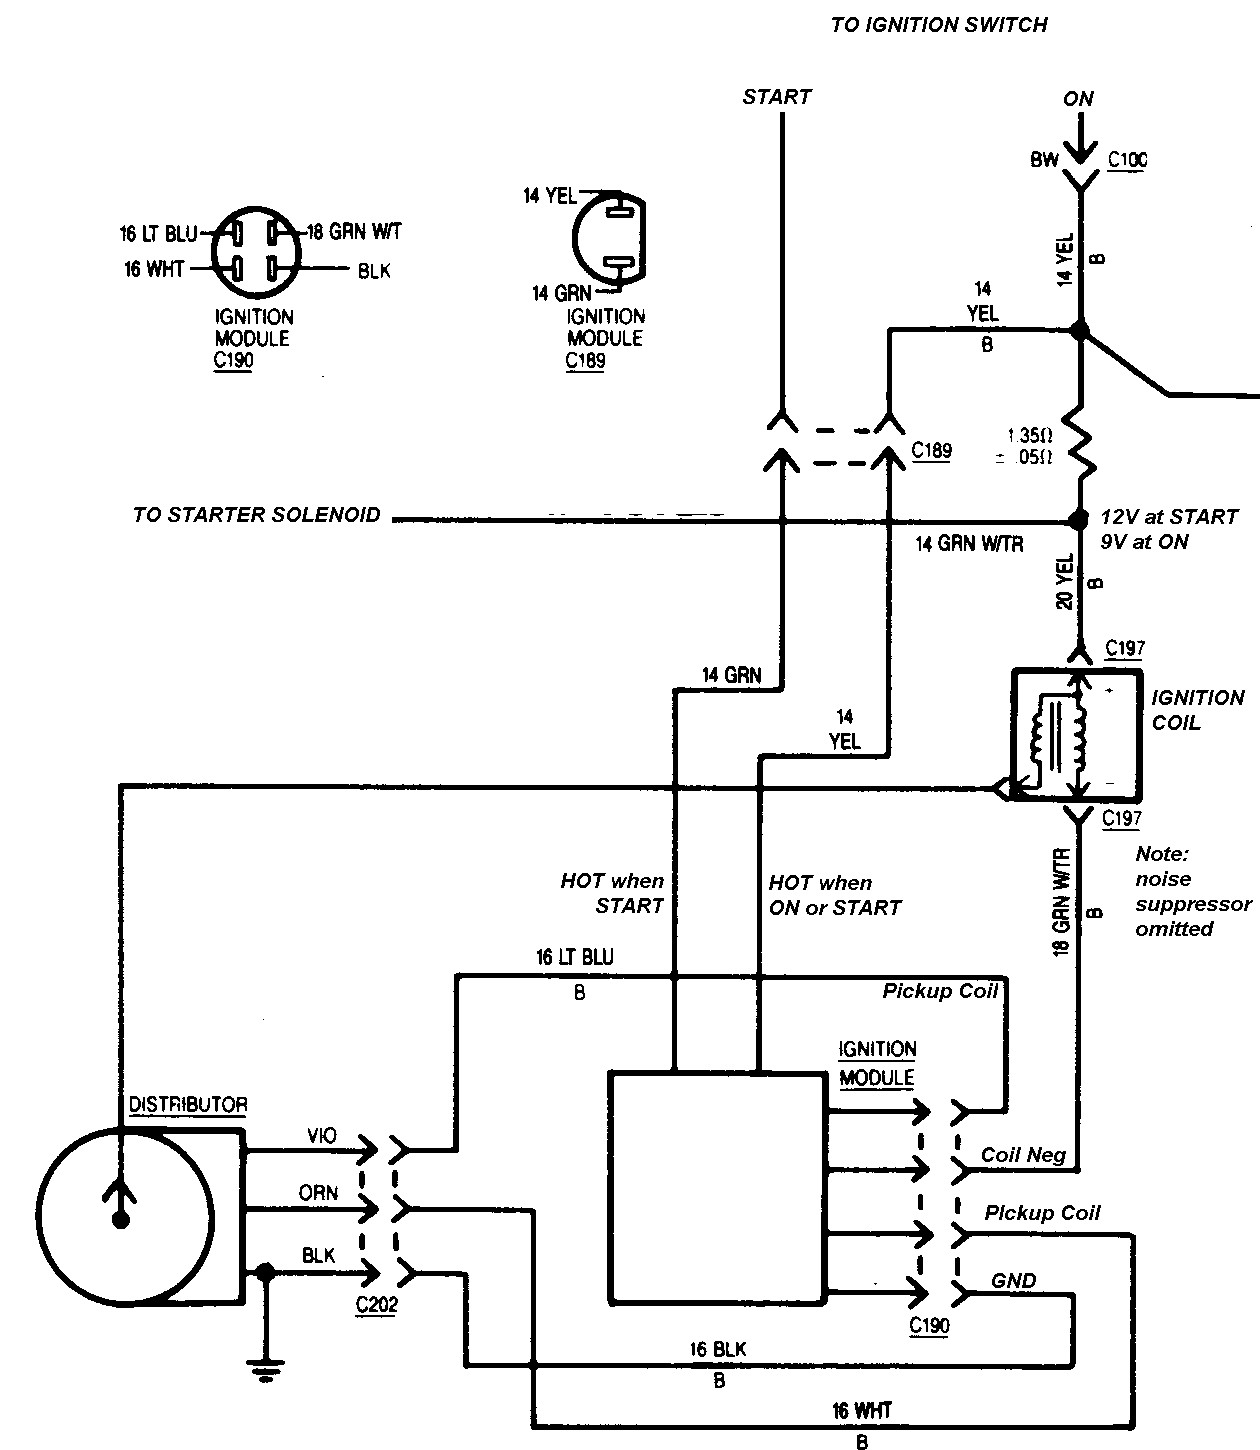 tbi carburetor diagram